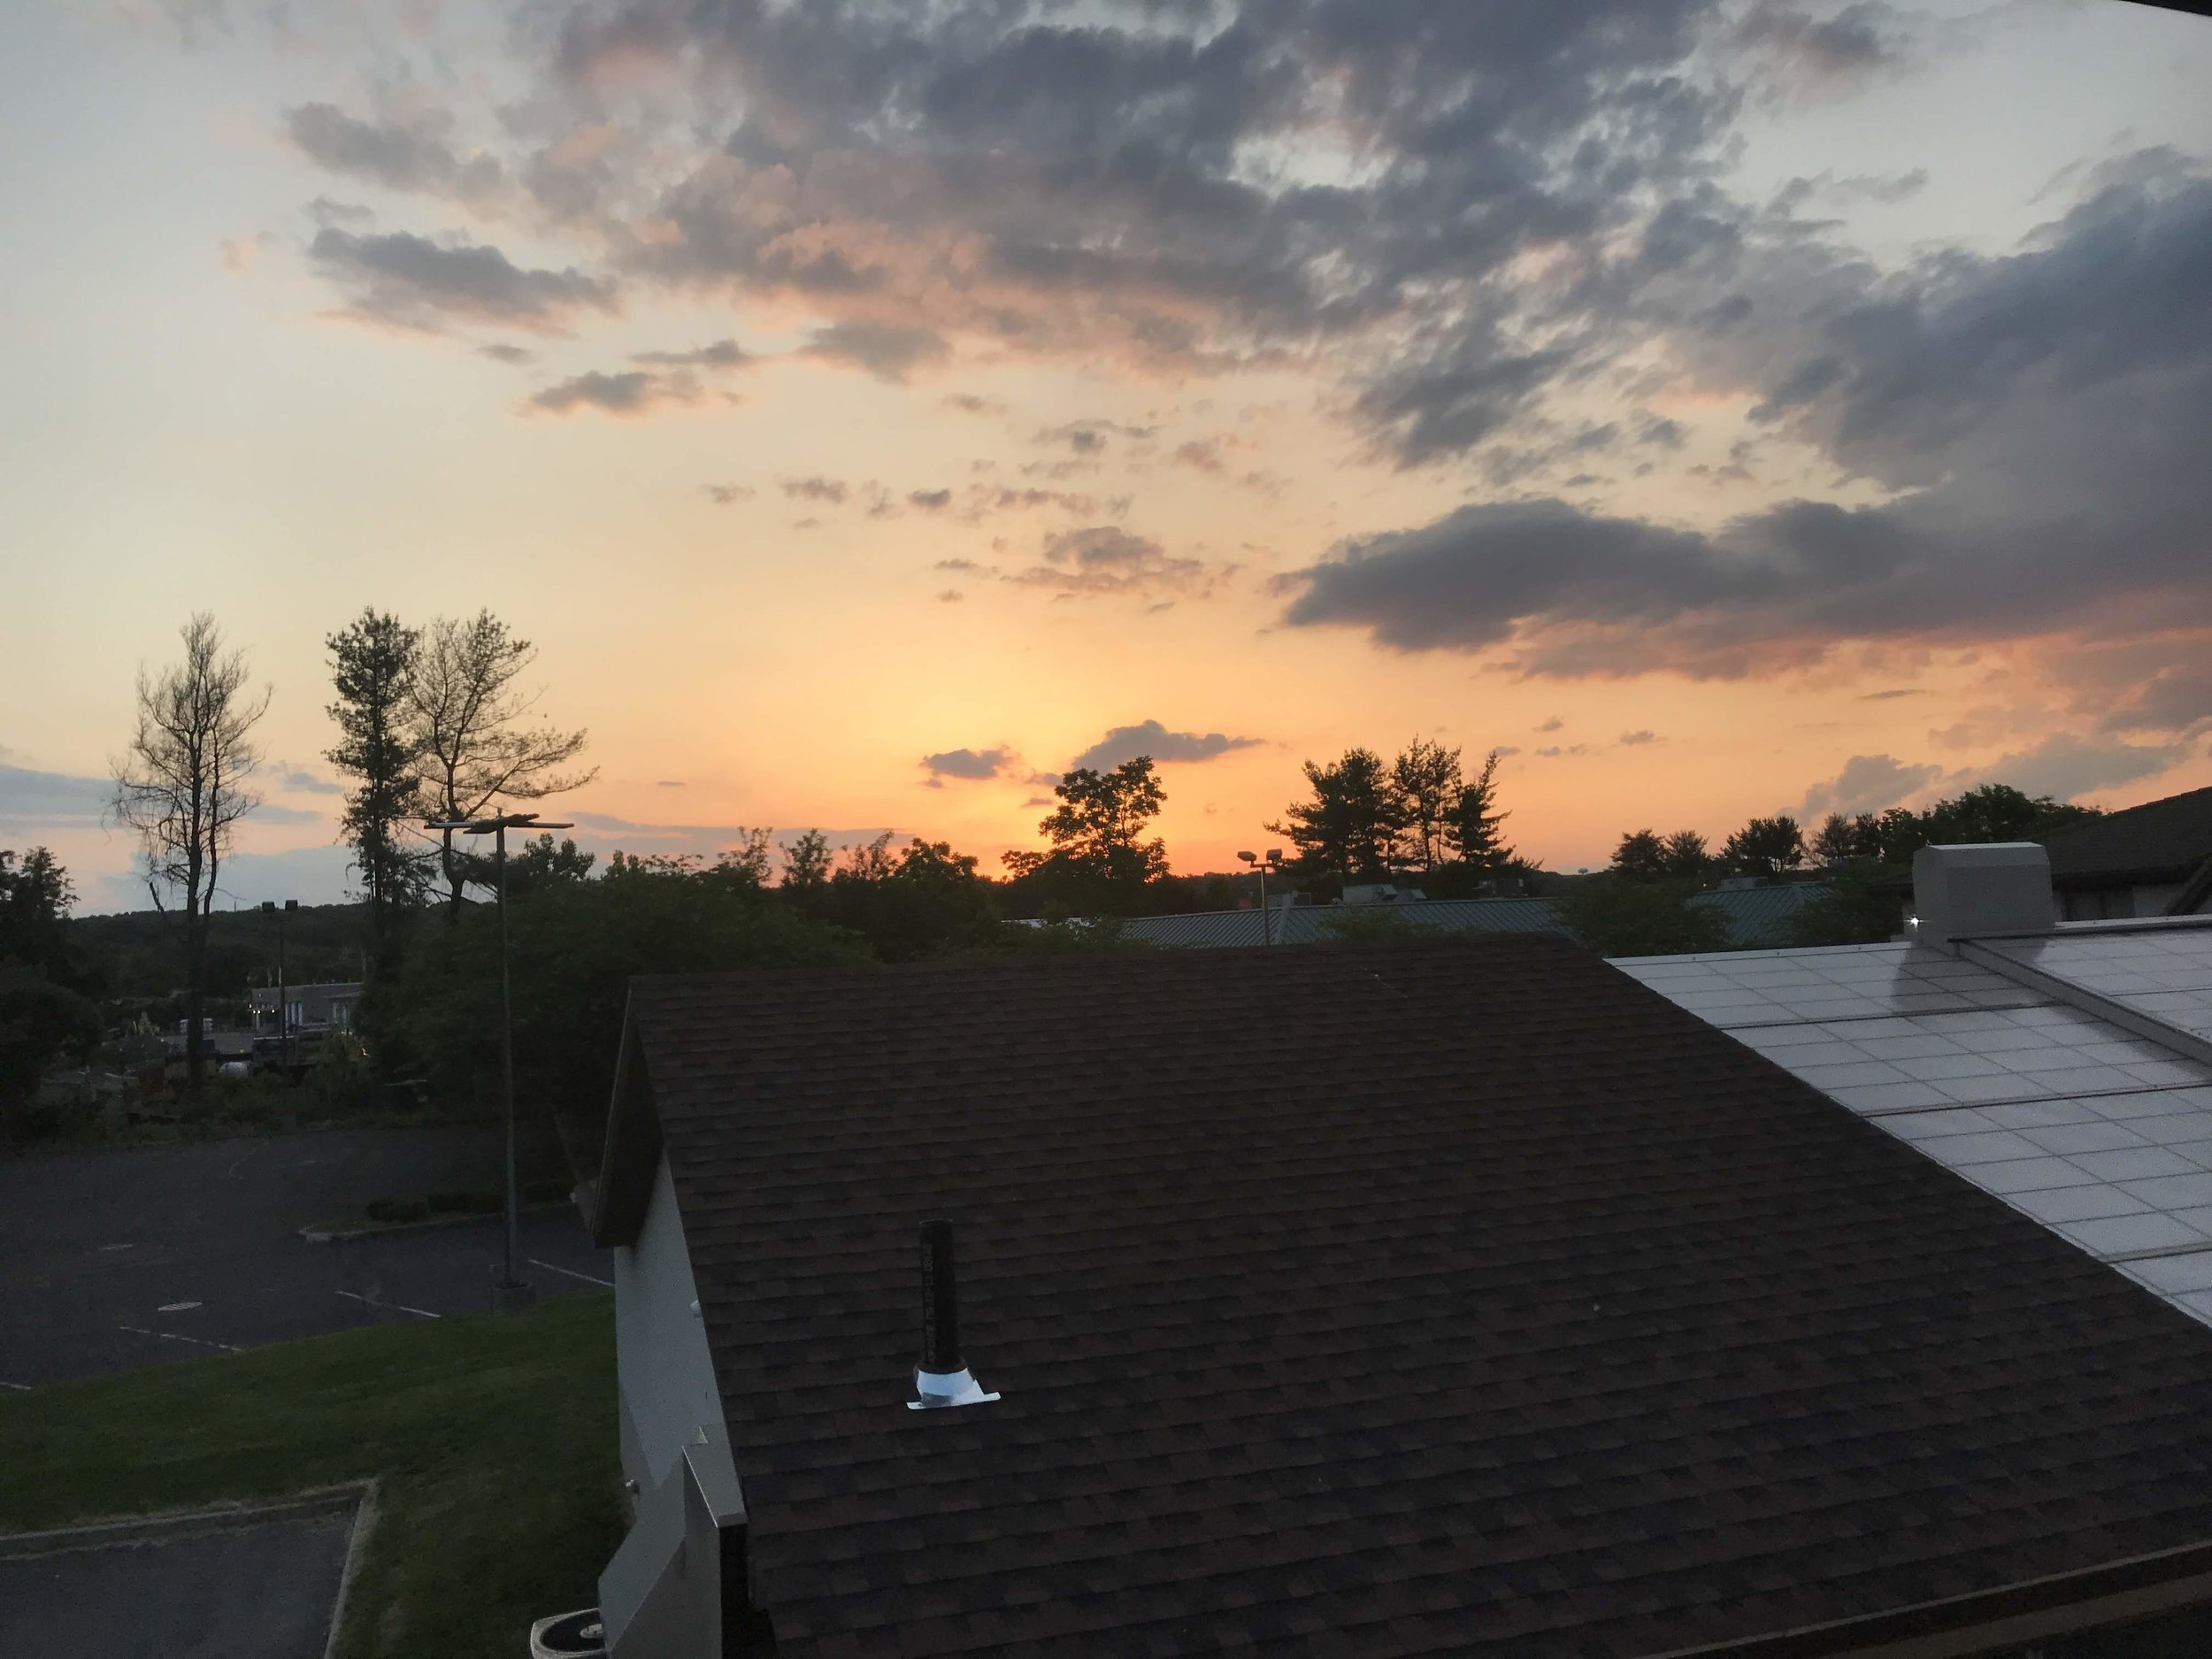 Sunset from the hotel room